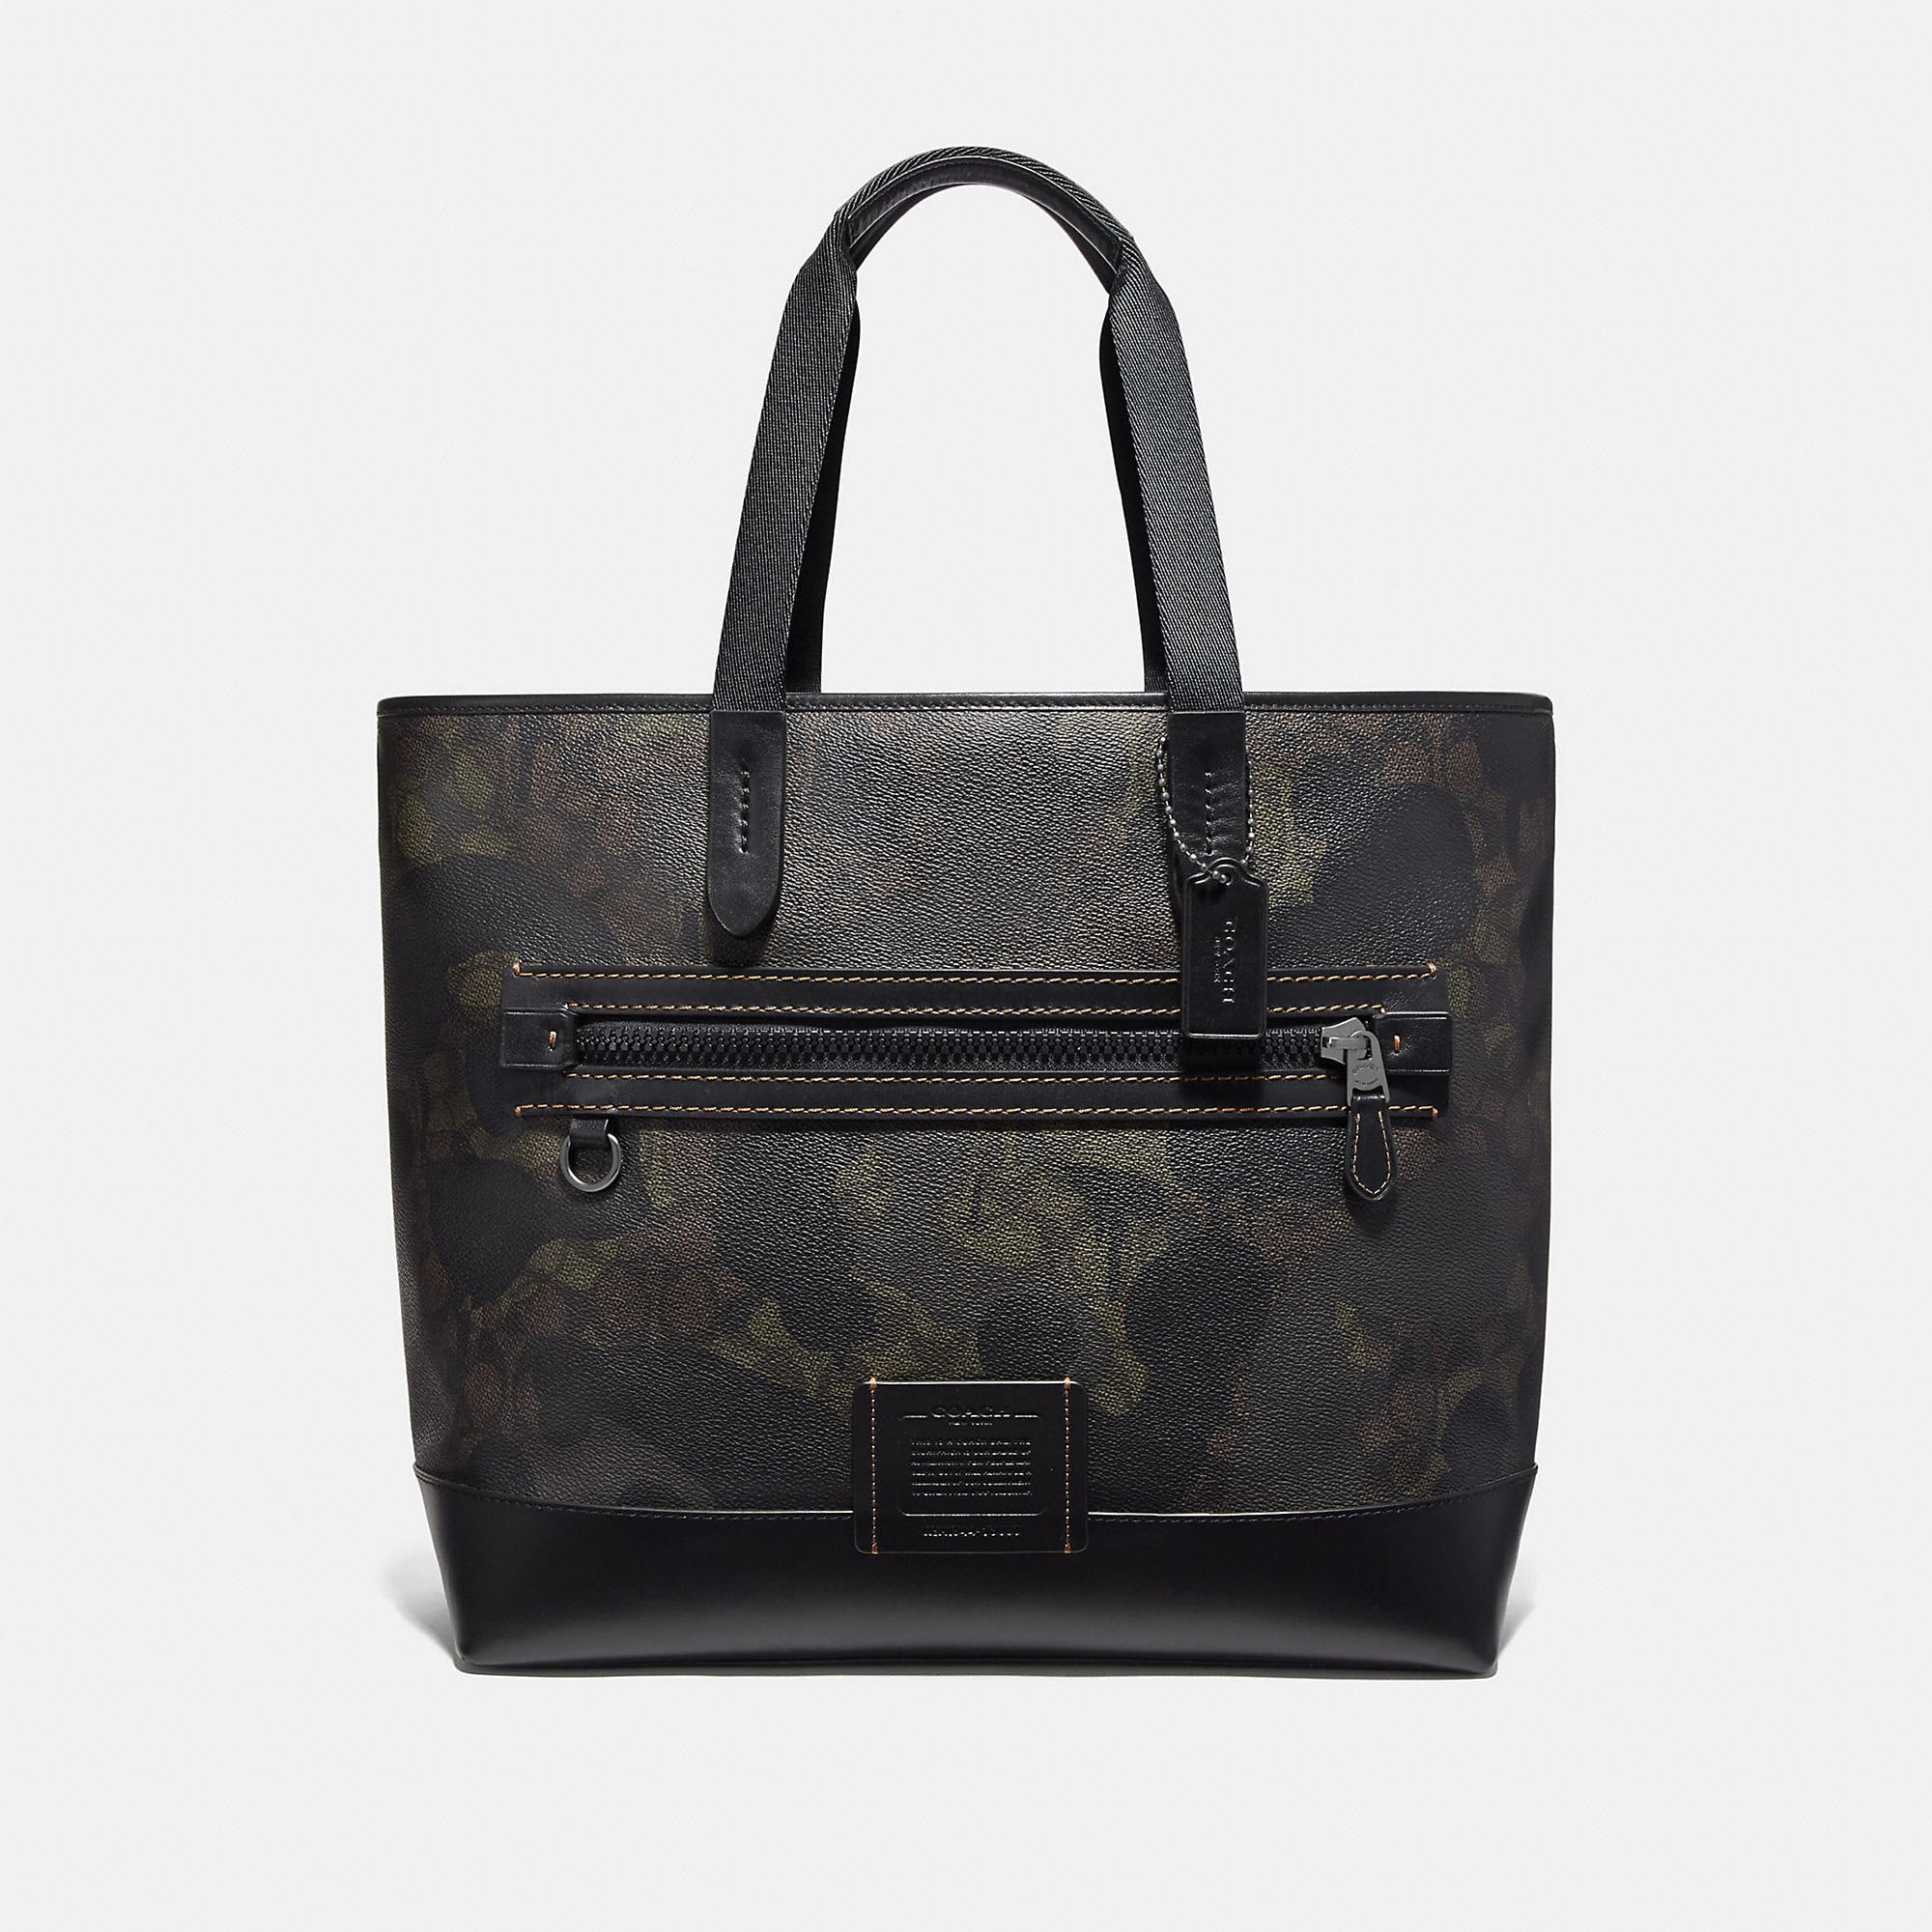 Coach Totes COACH ACADEMY TOTE IN SIGNATURE CANVAS WITH WILD BEAST PRINT